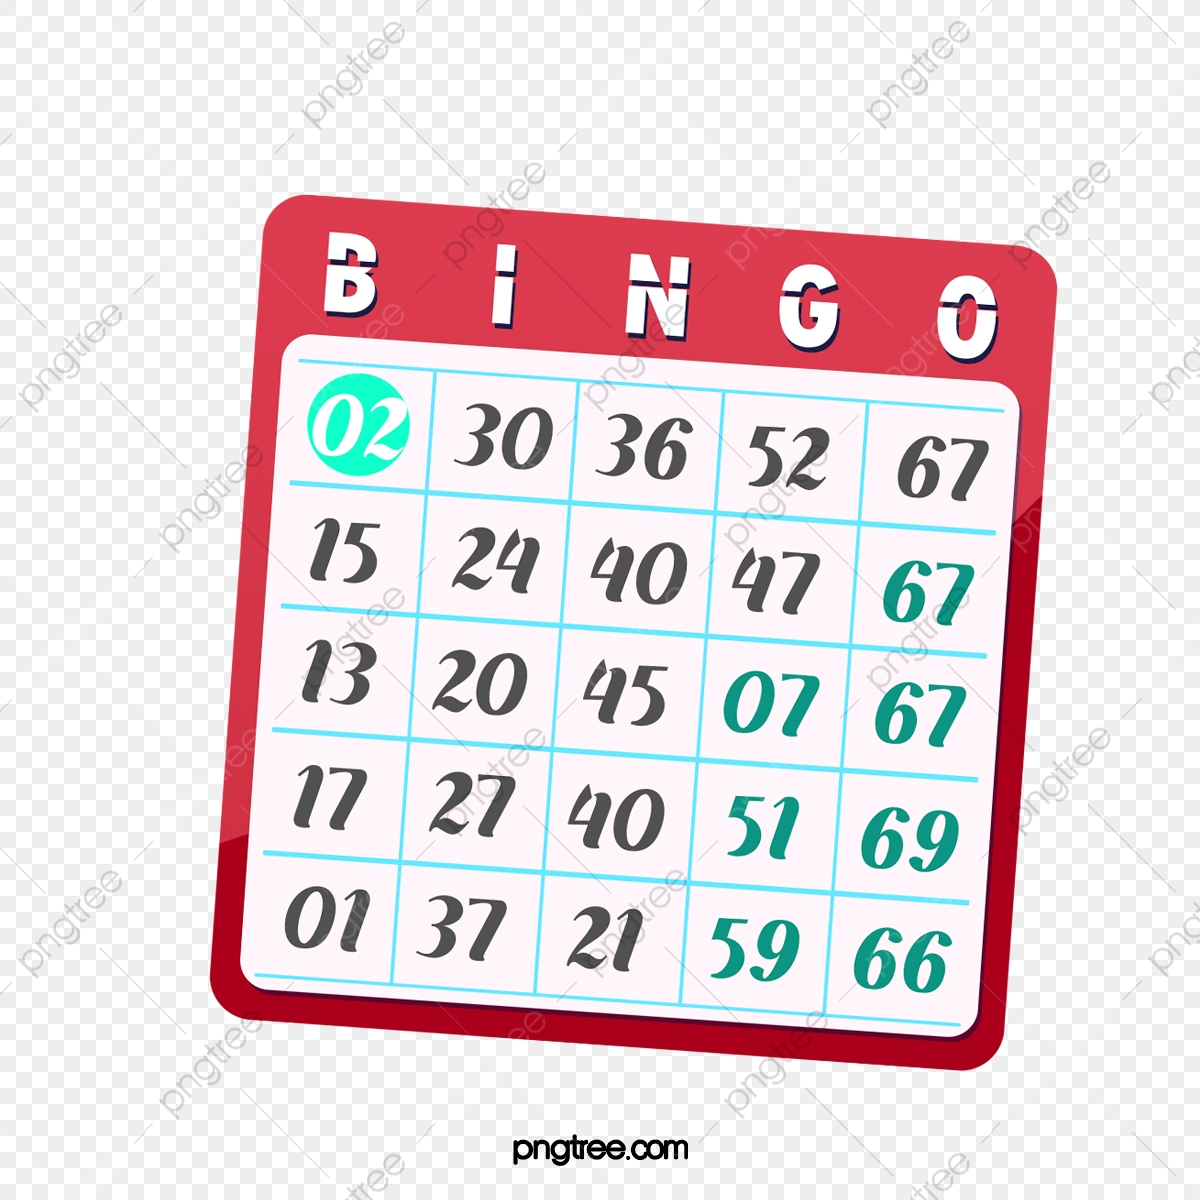 Board Game Png Images Vector And Psd Files Free Download On Pngtree